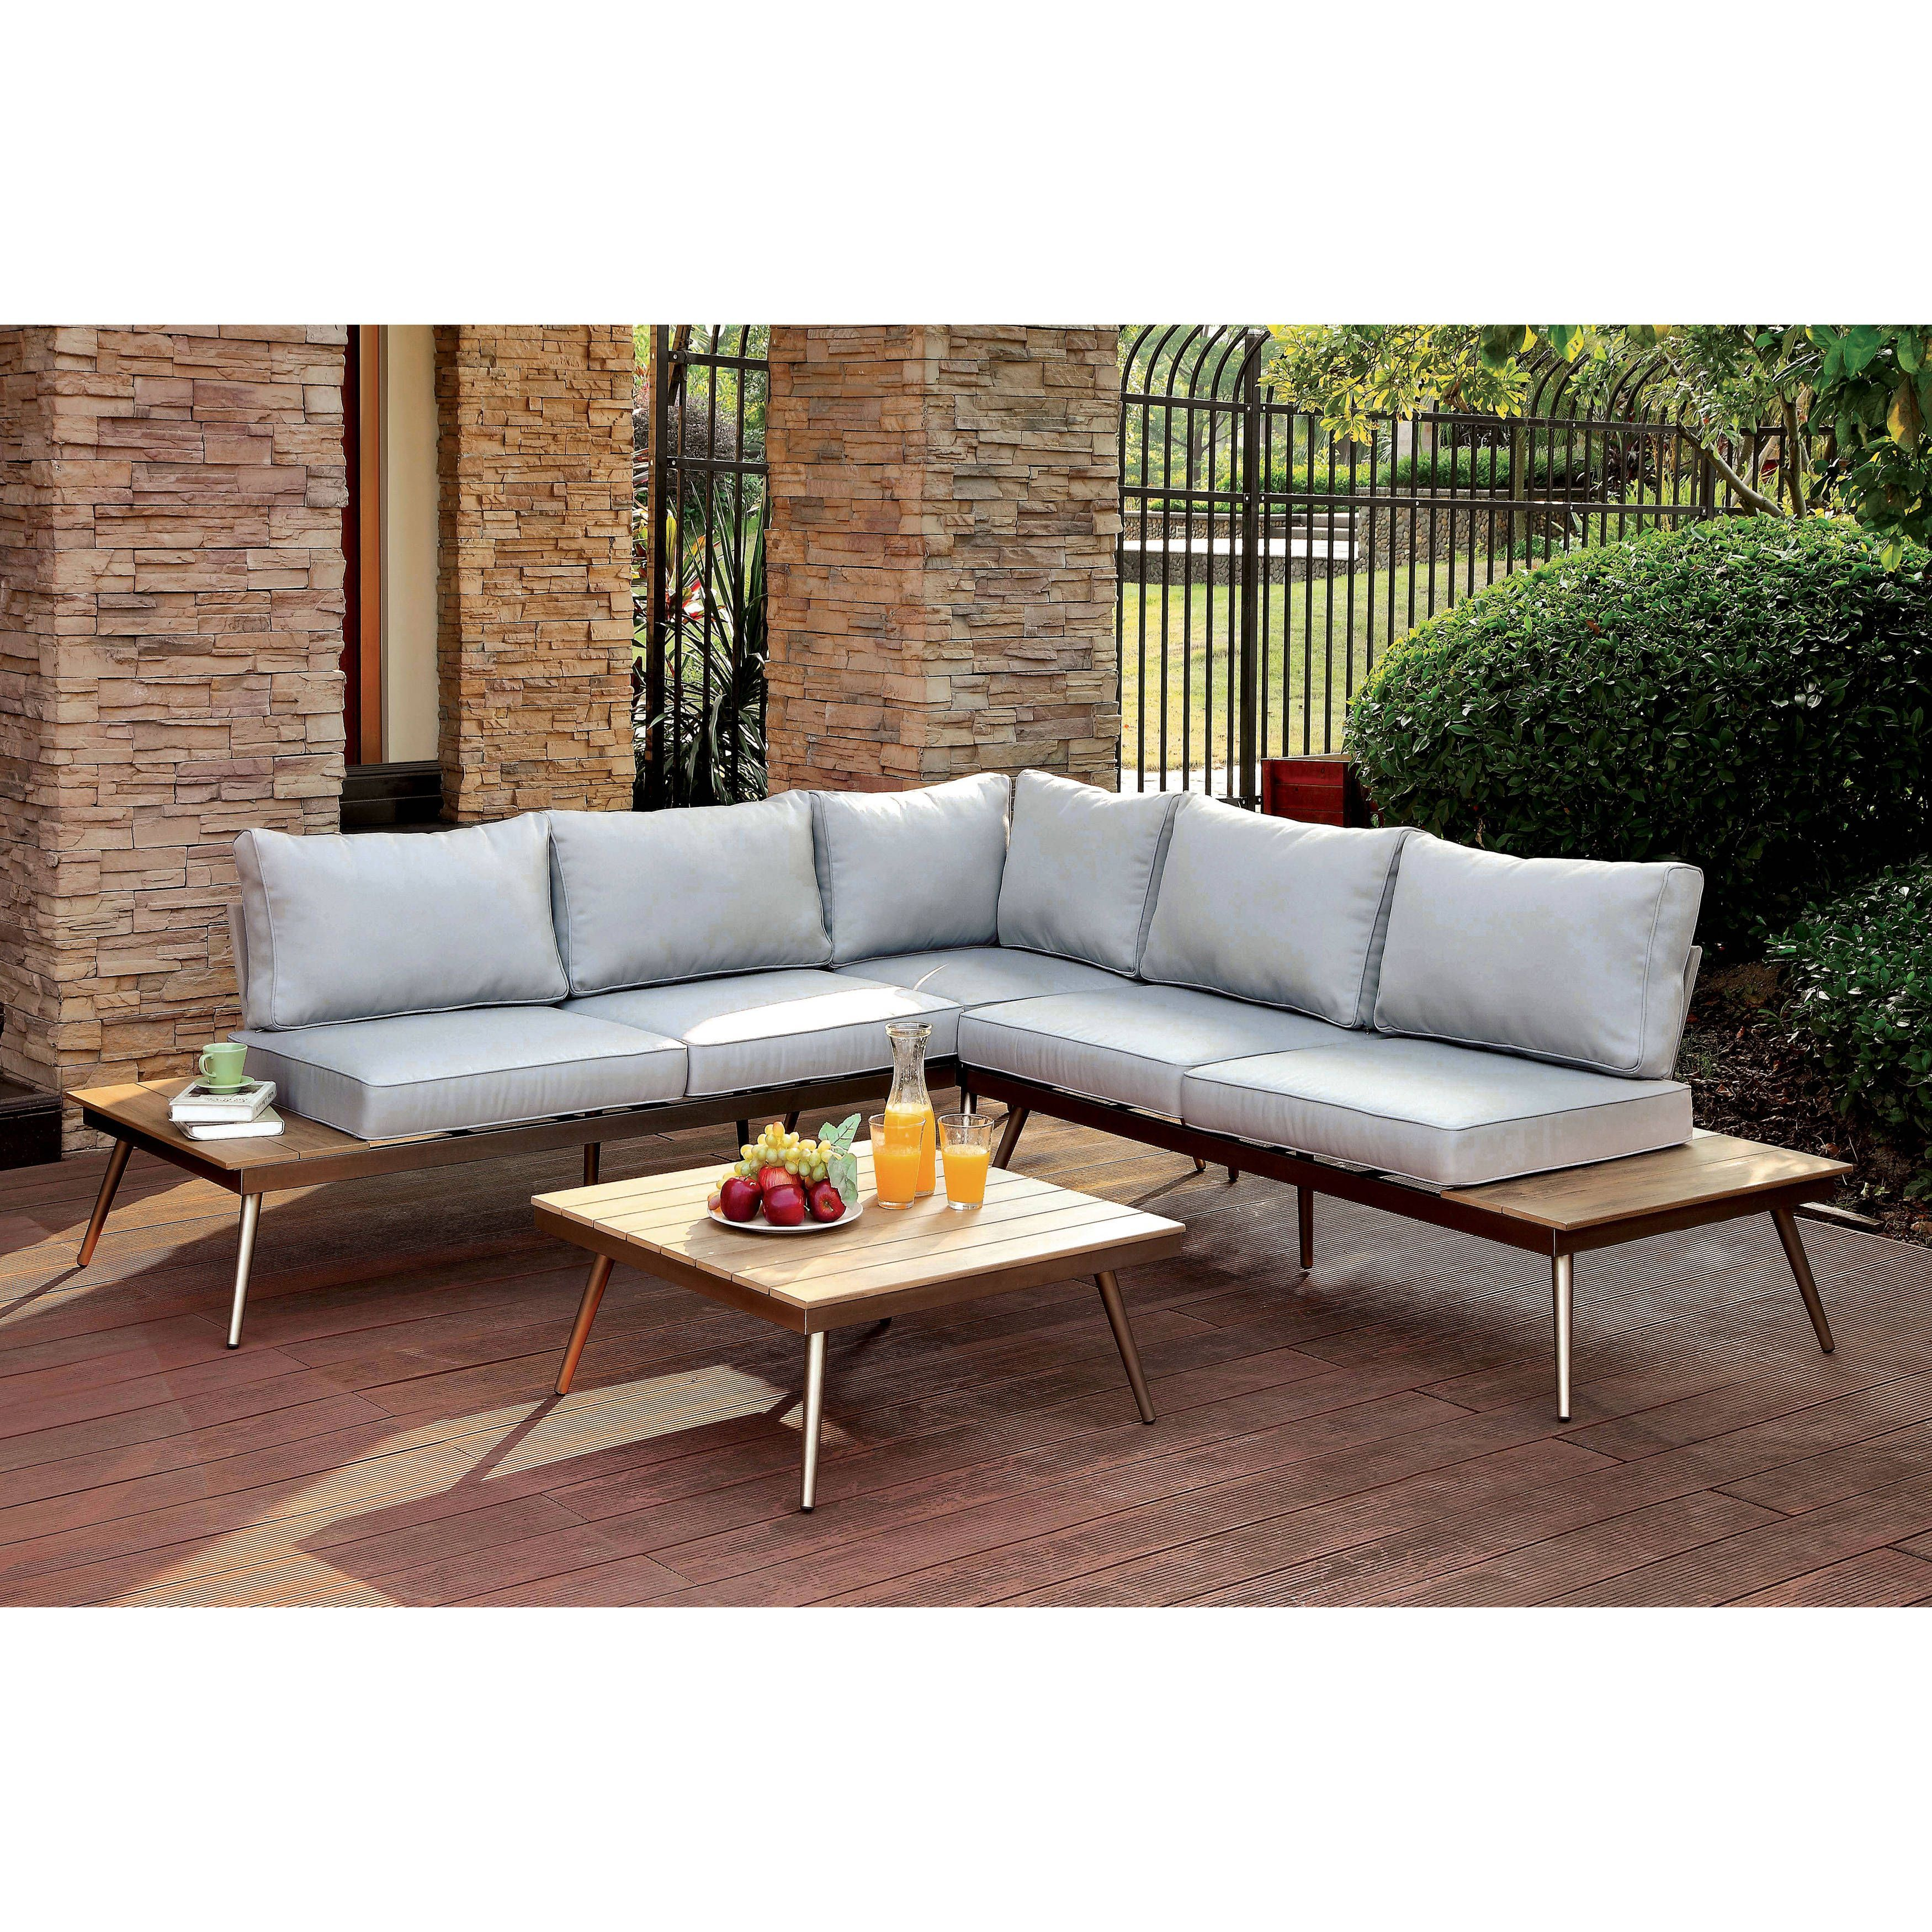 designs metal porch traba furniture outdoor bench homes seating modern balcony lounge top chairs benches brilliant beautiful deep contemporary sets front storage cool patio modernist